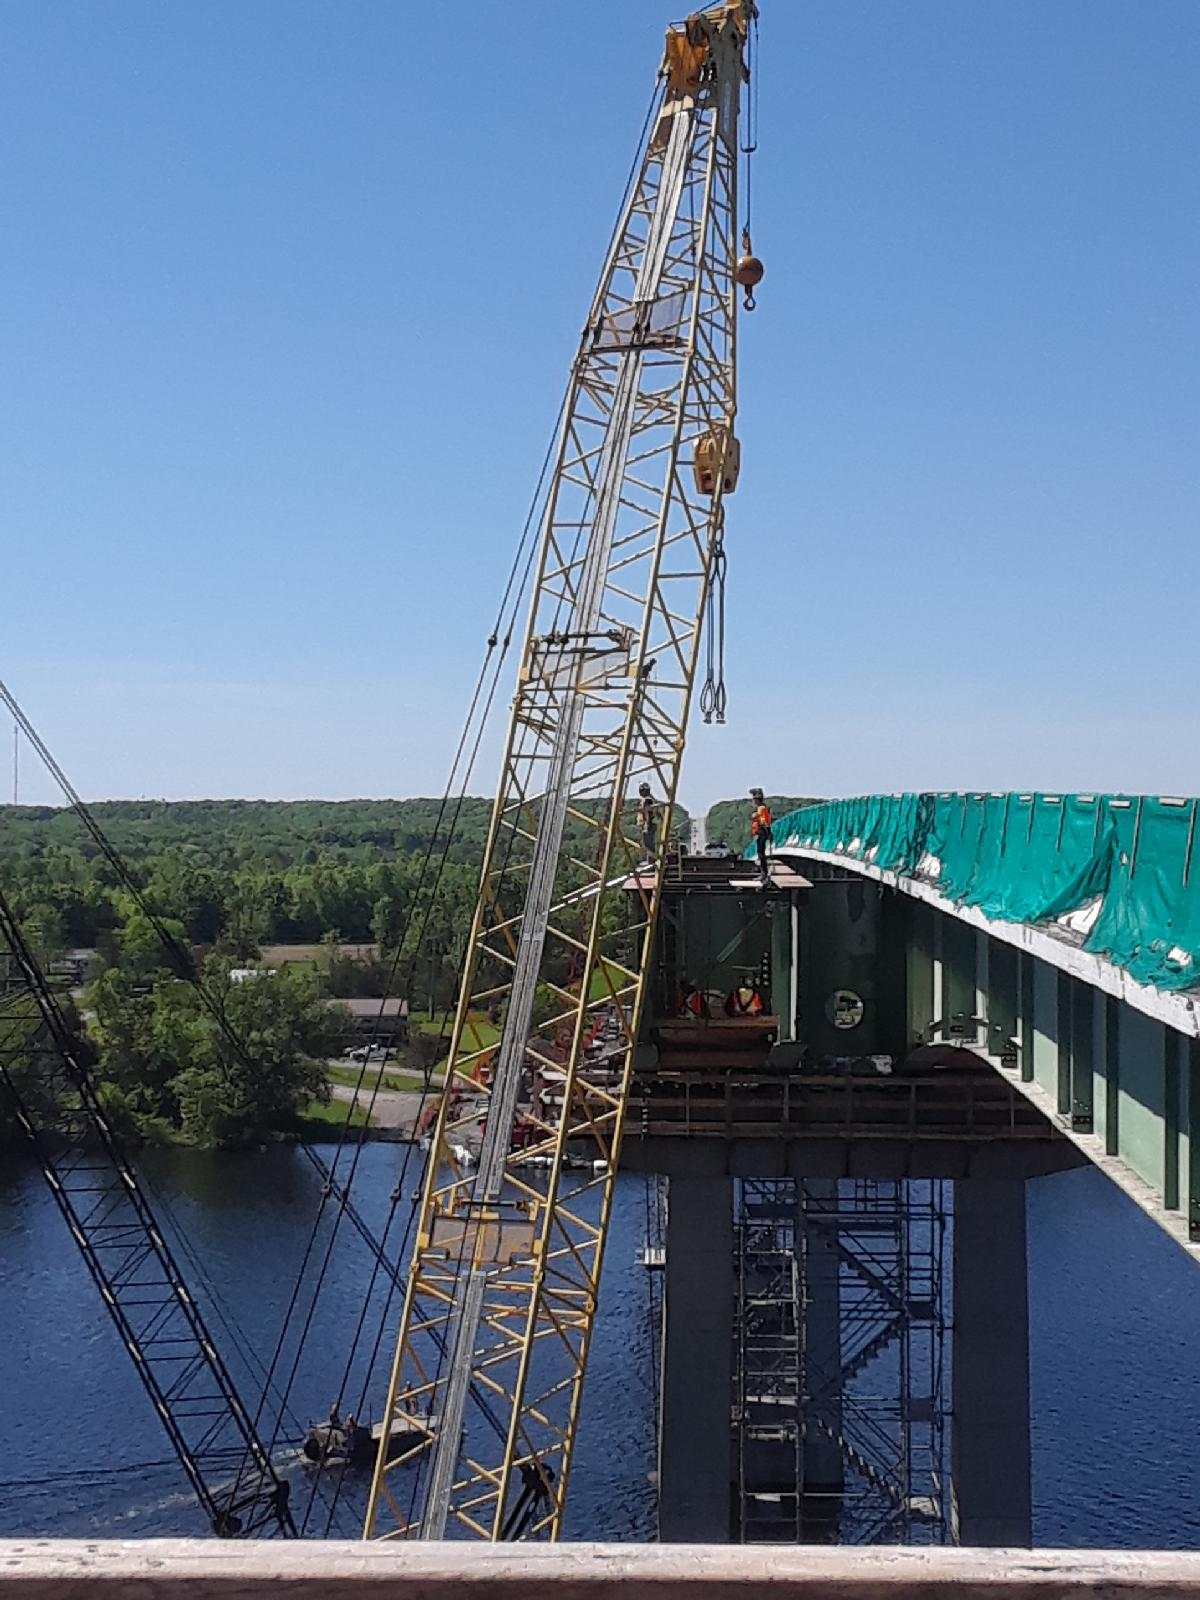 Cutting and hooking up crane cables to girder for removal